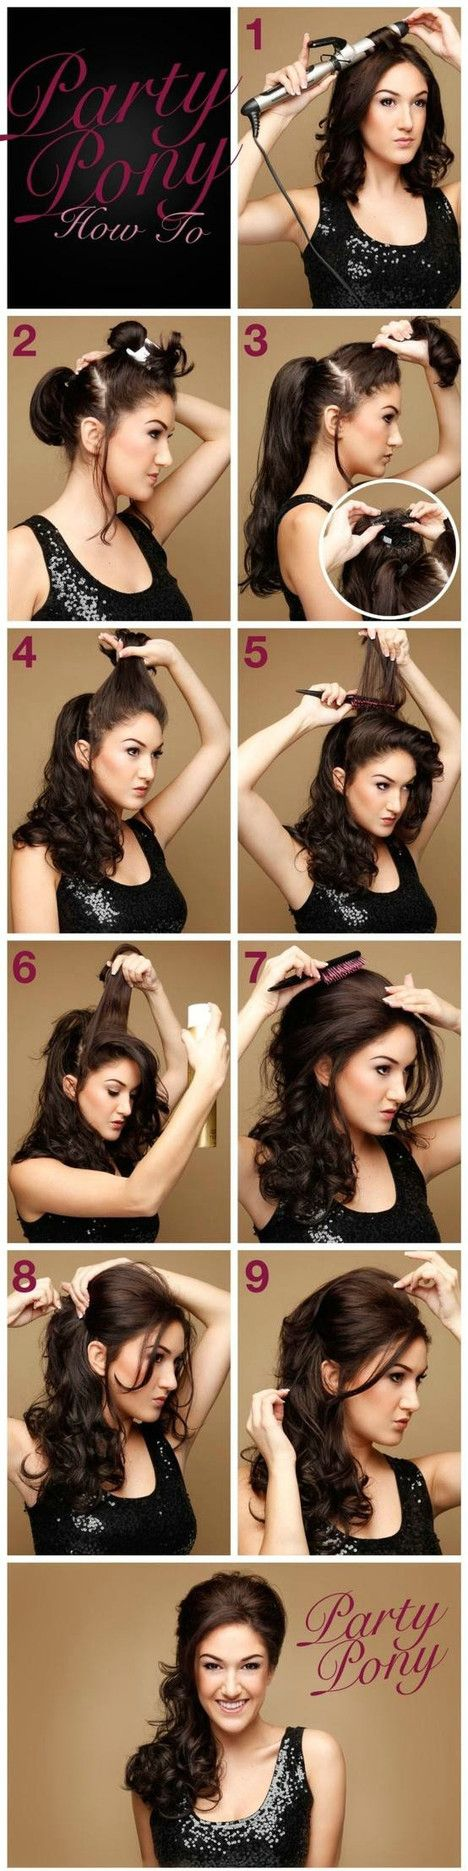 party hairstyle // took me a minute to figure out what she was doing in step 3...she's clipping extensions, I think. It looks like her hair is actually shoulder length (which means I COULD do this!)